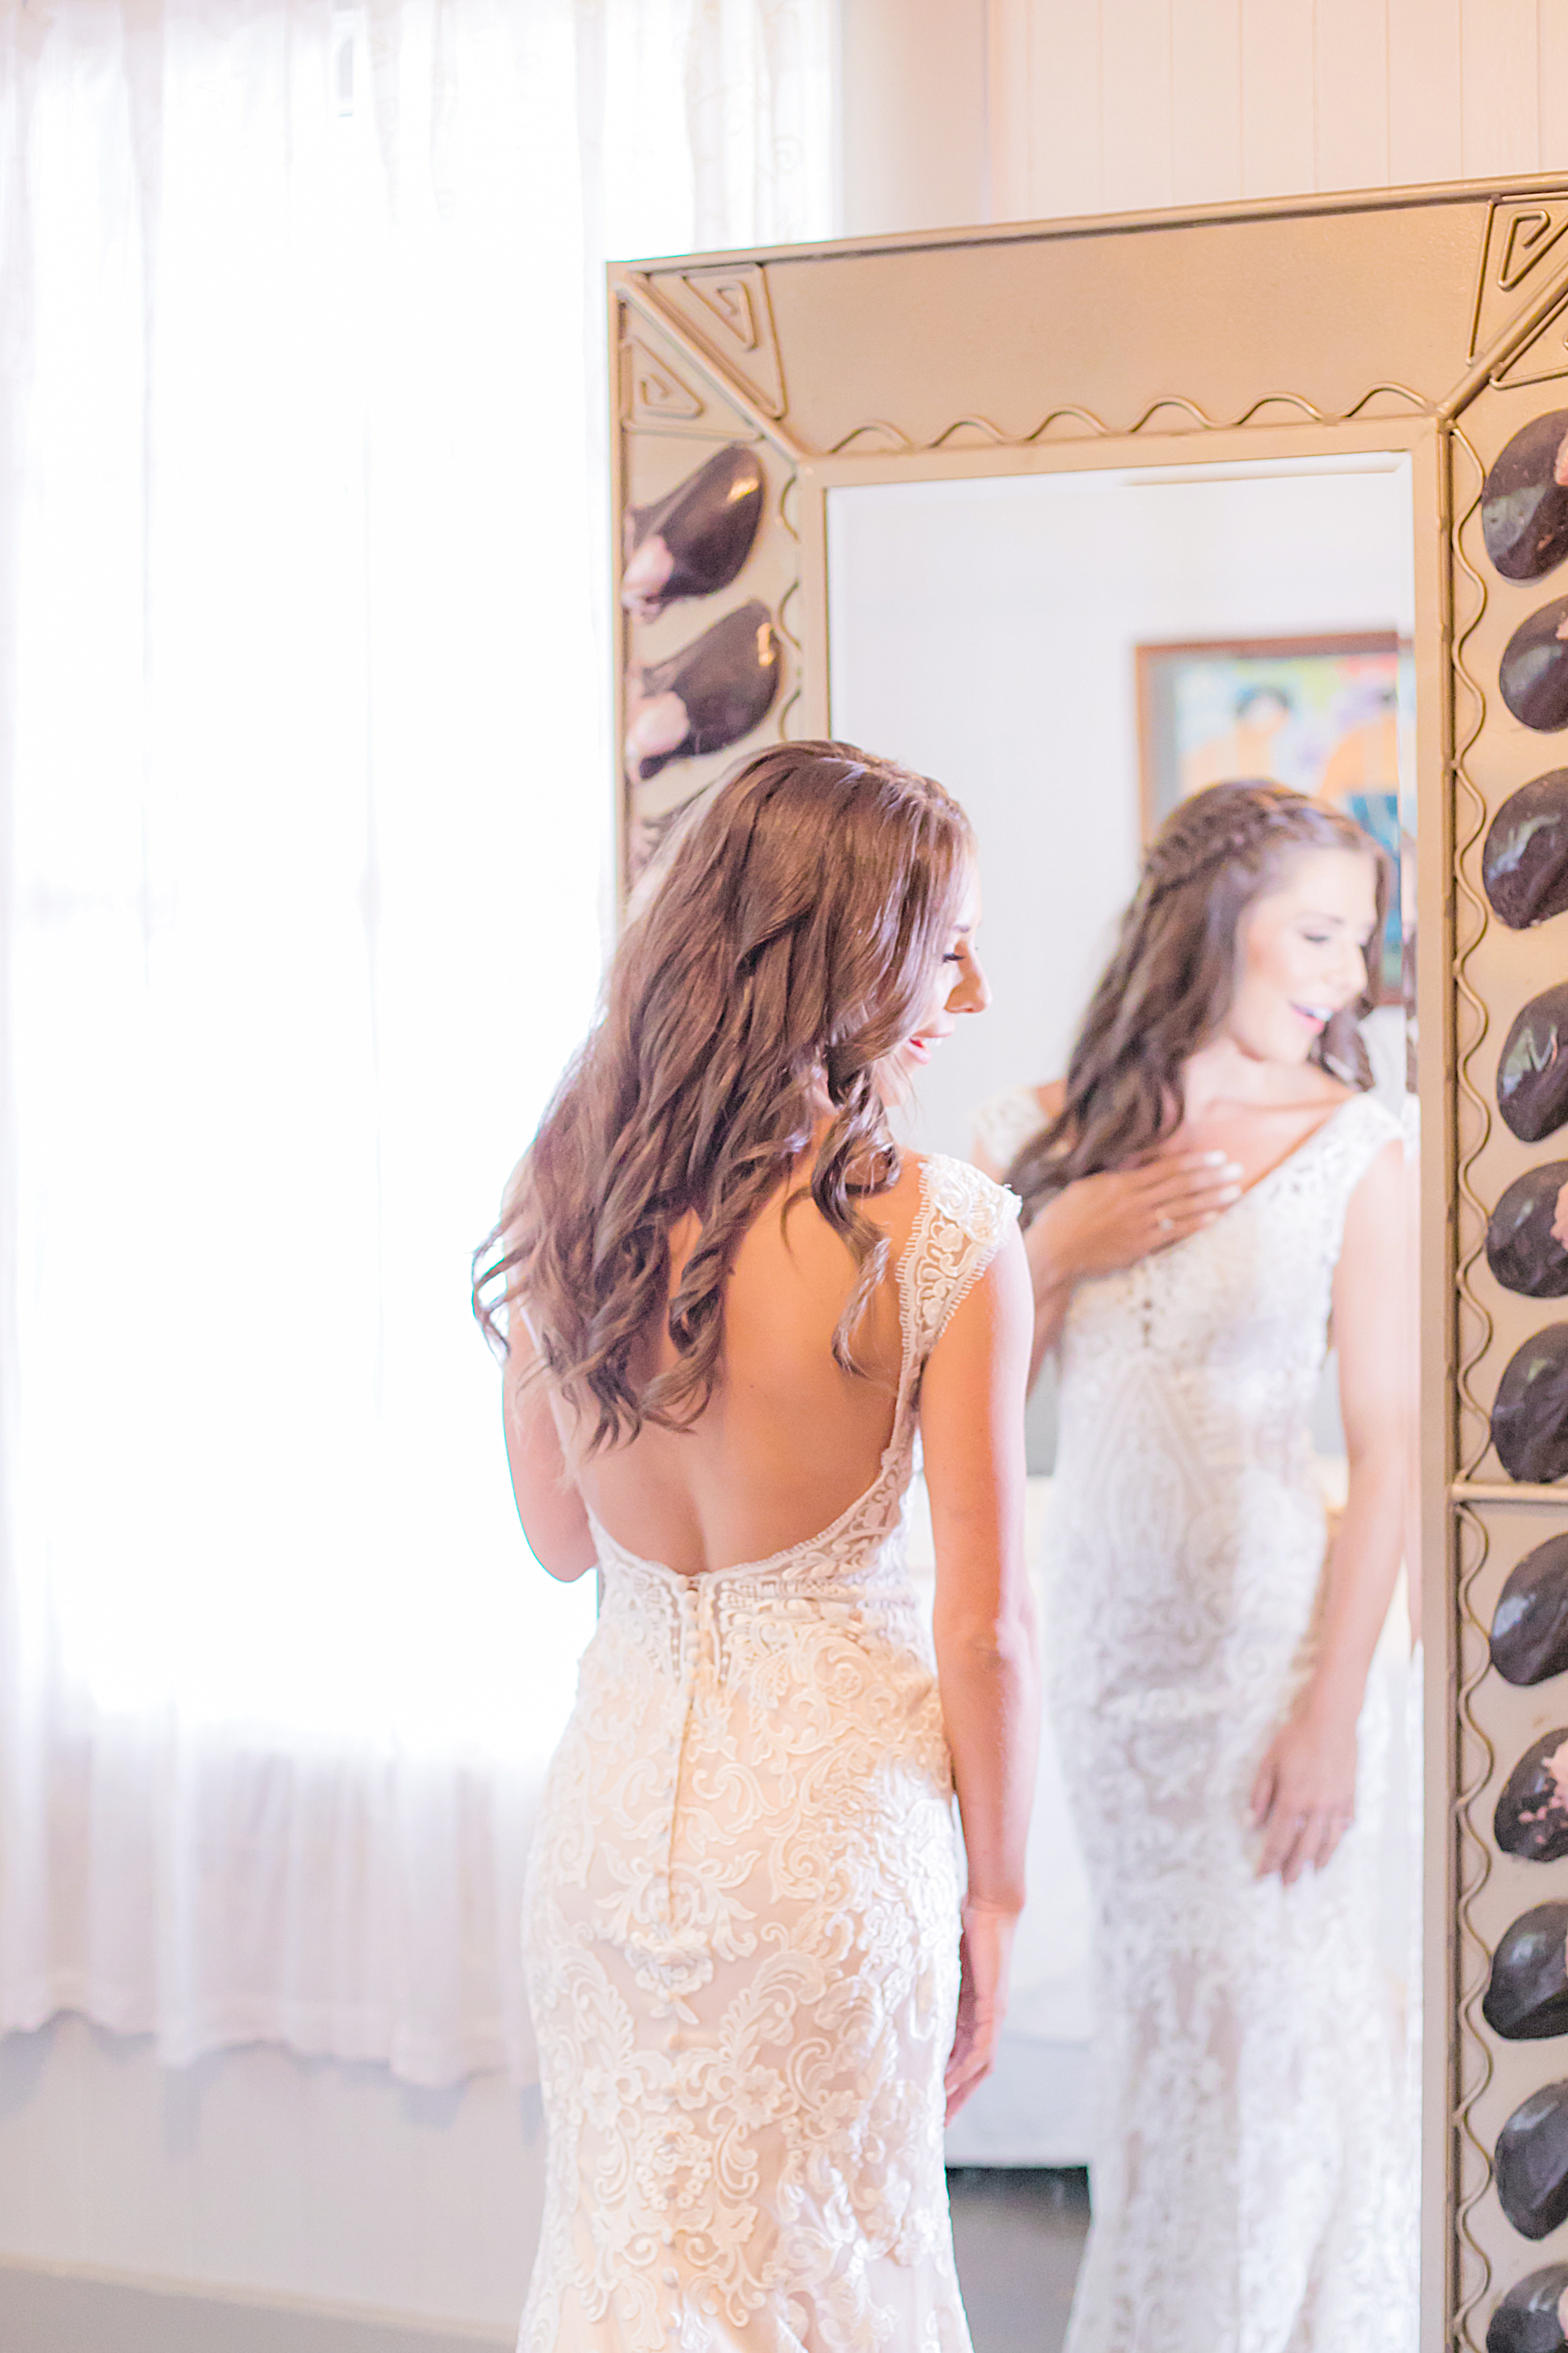 Getting ready bridal portrait | Destination Wedding in Maui | Maui Wedding Planner | Maui's Angels blog